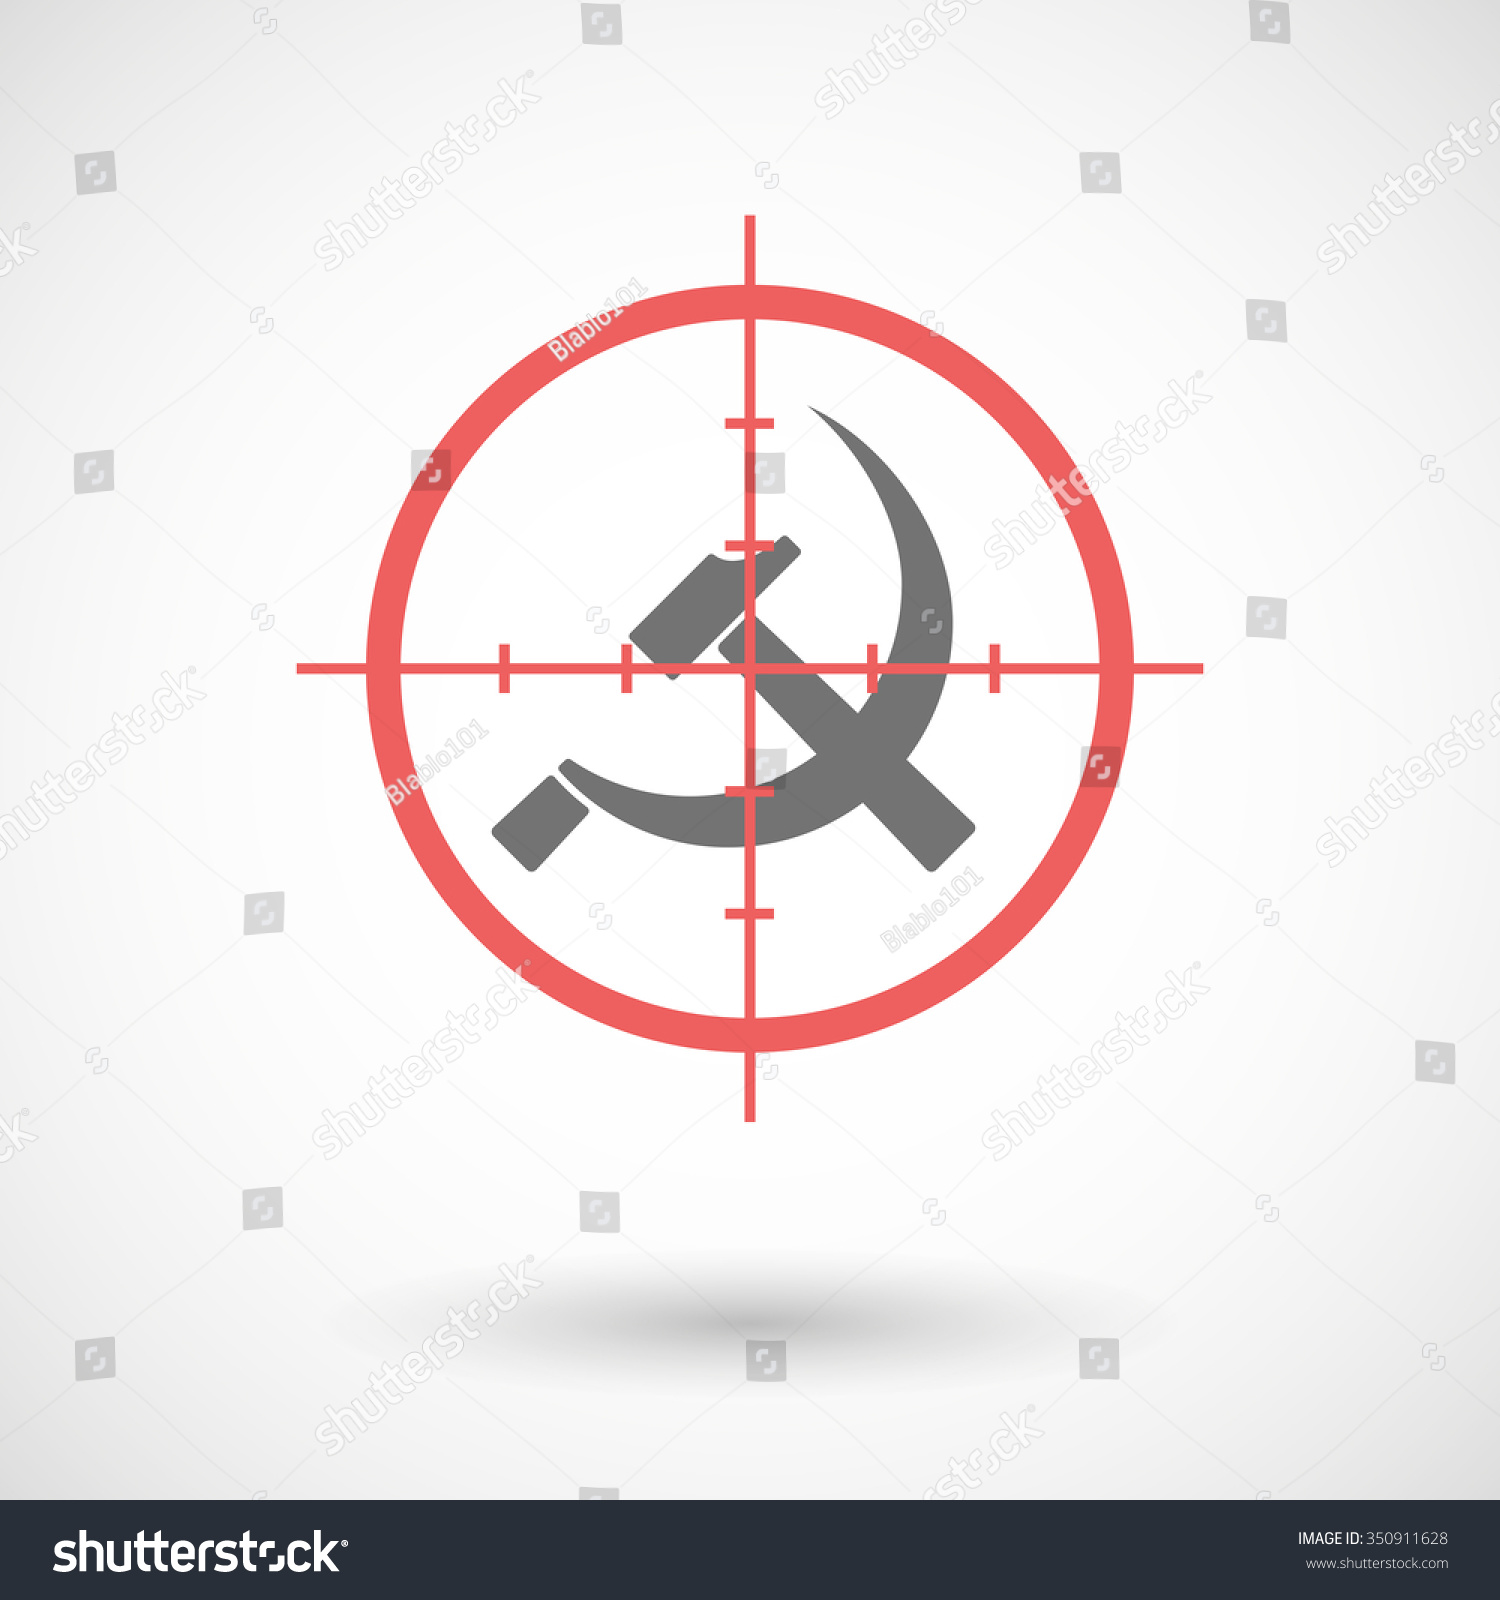 Illustration Red Crosshair Icon Targeting Communist Stock Vector